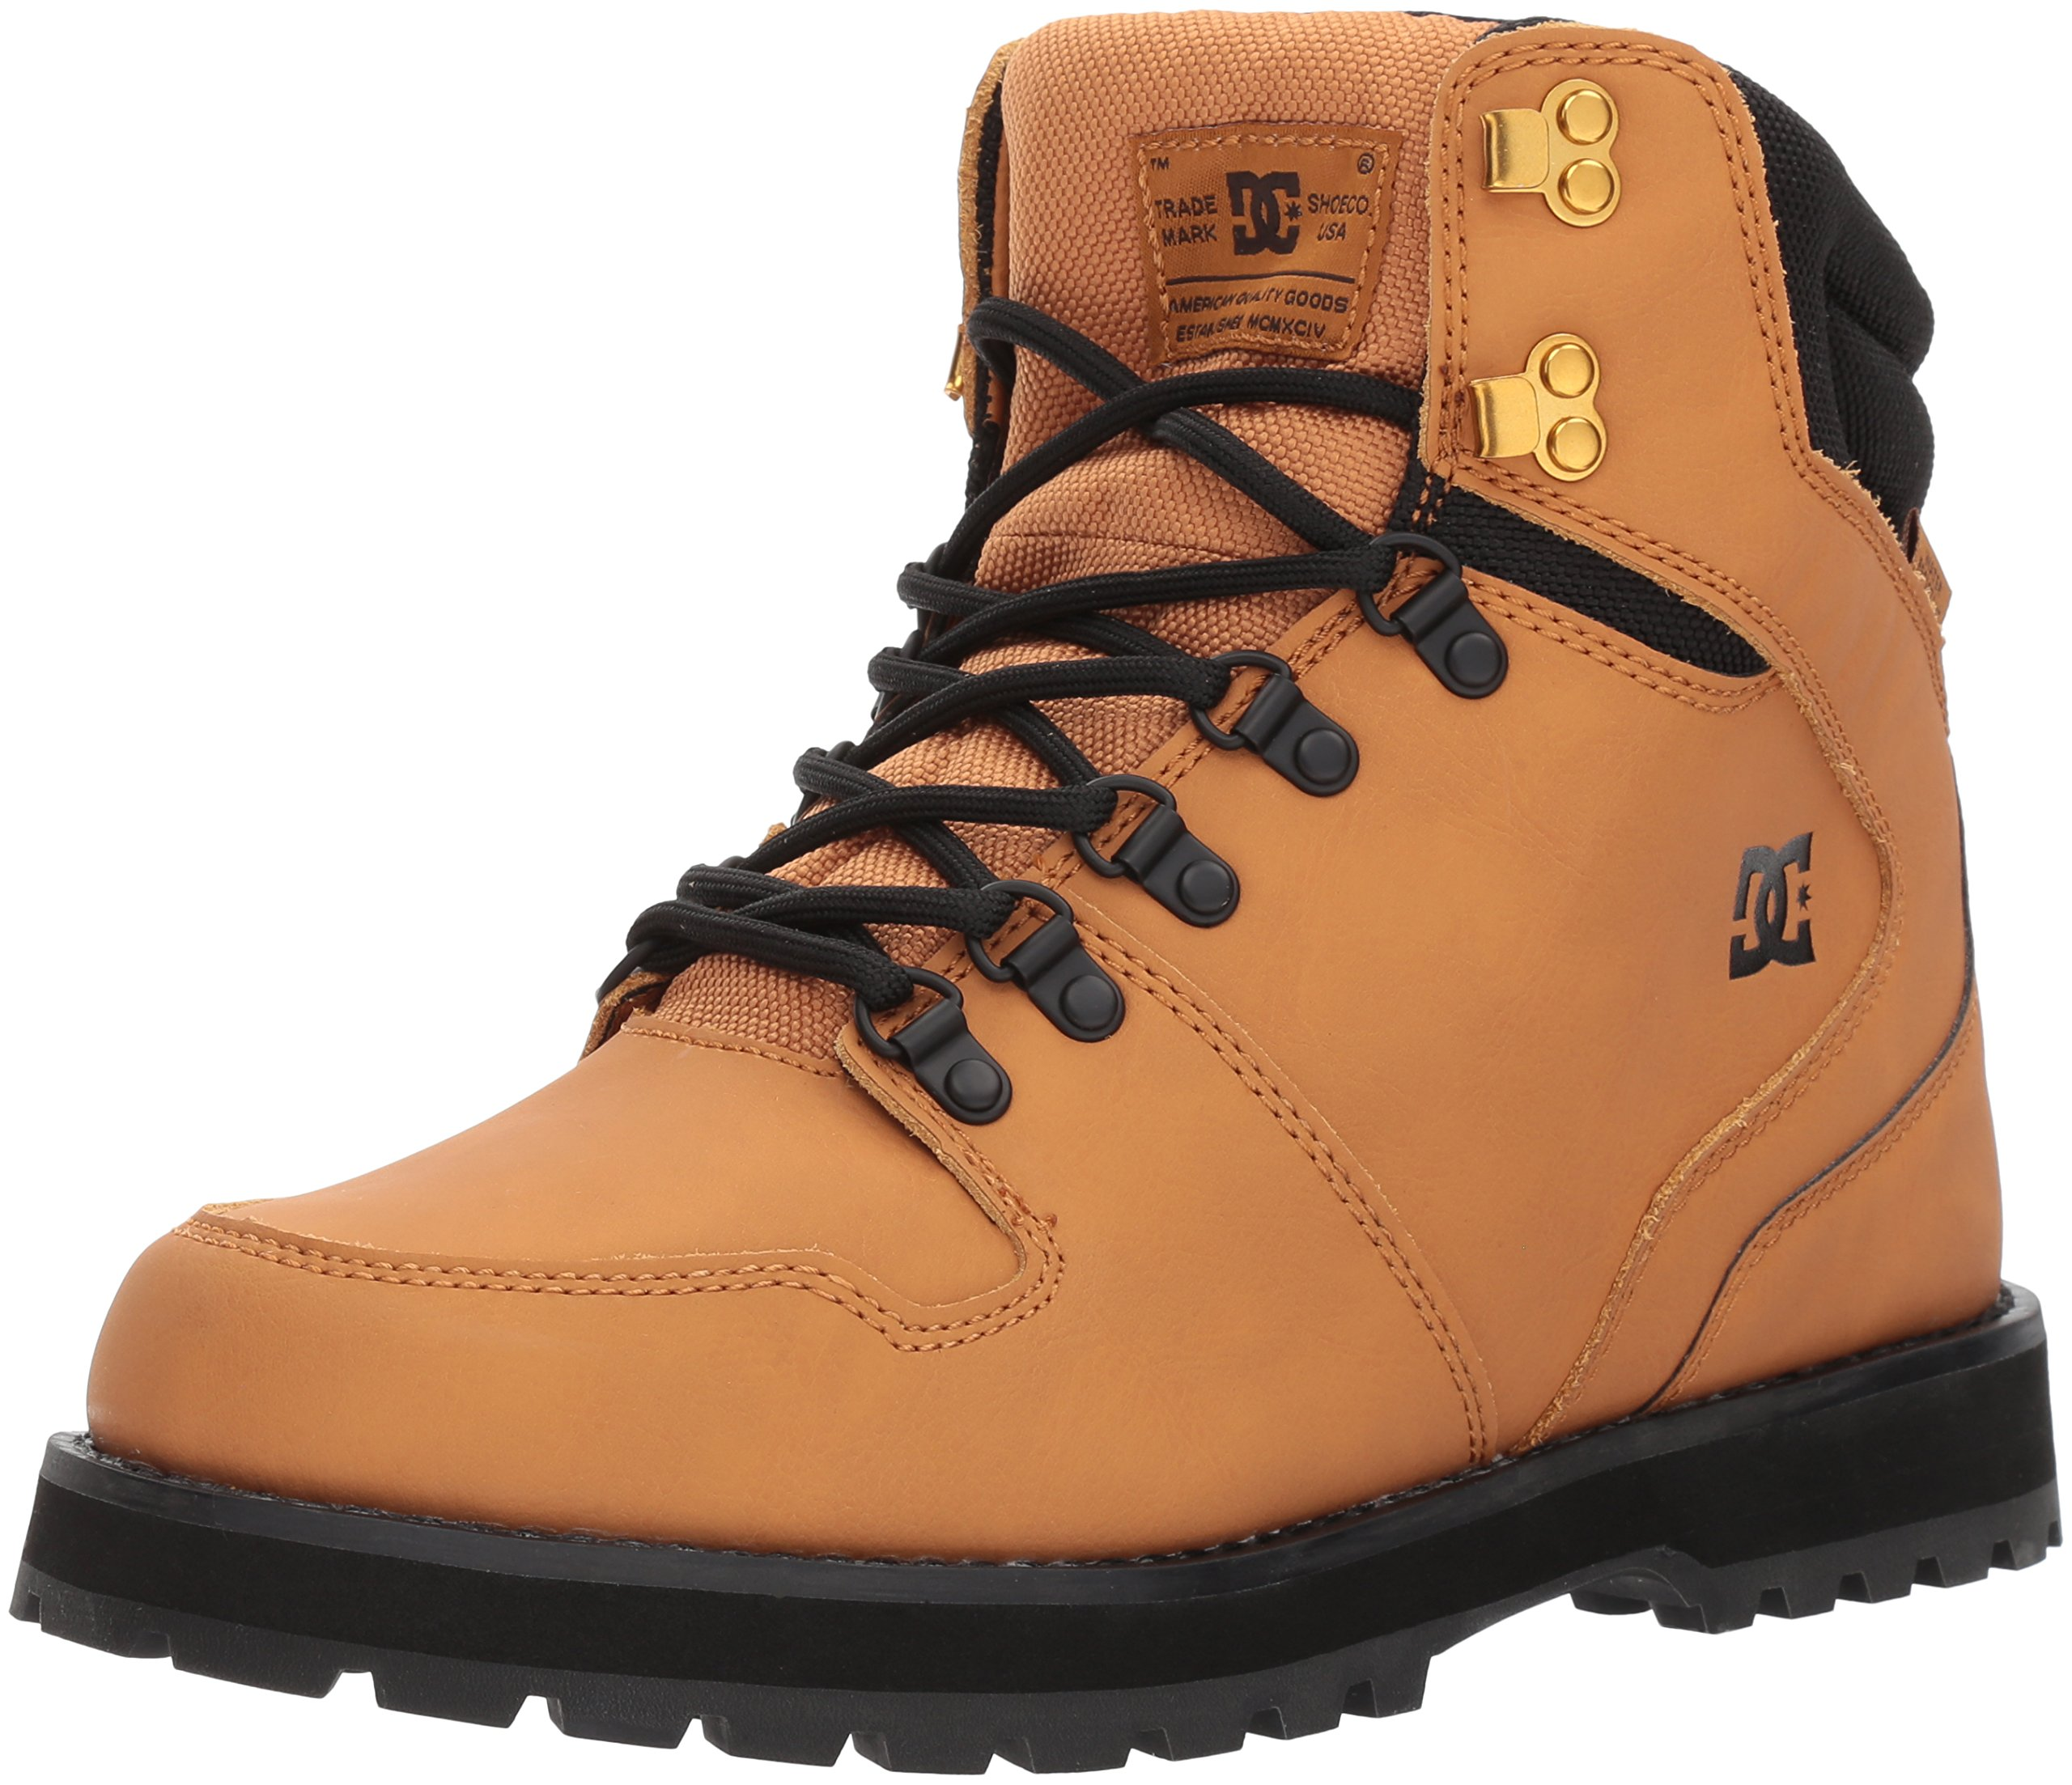 DC Men's Peary, Wheat/Black, 8.5 D D US